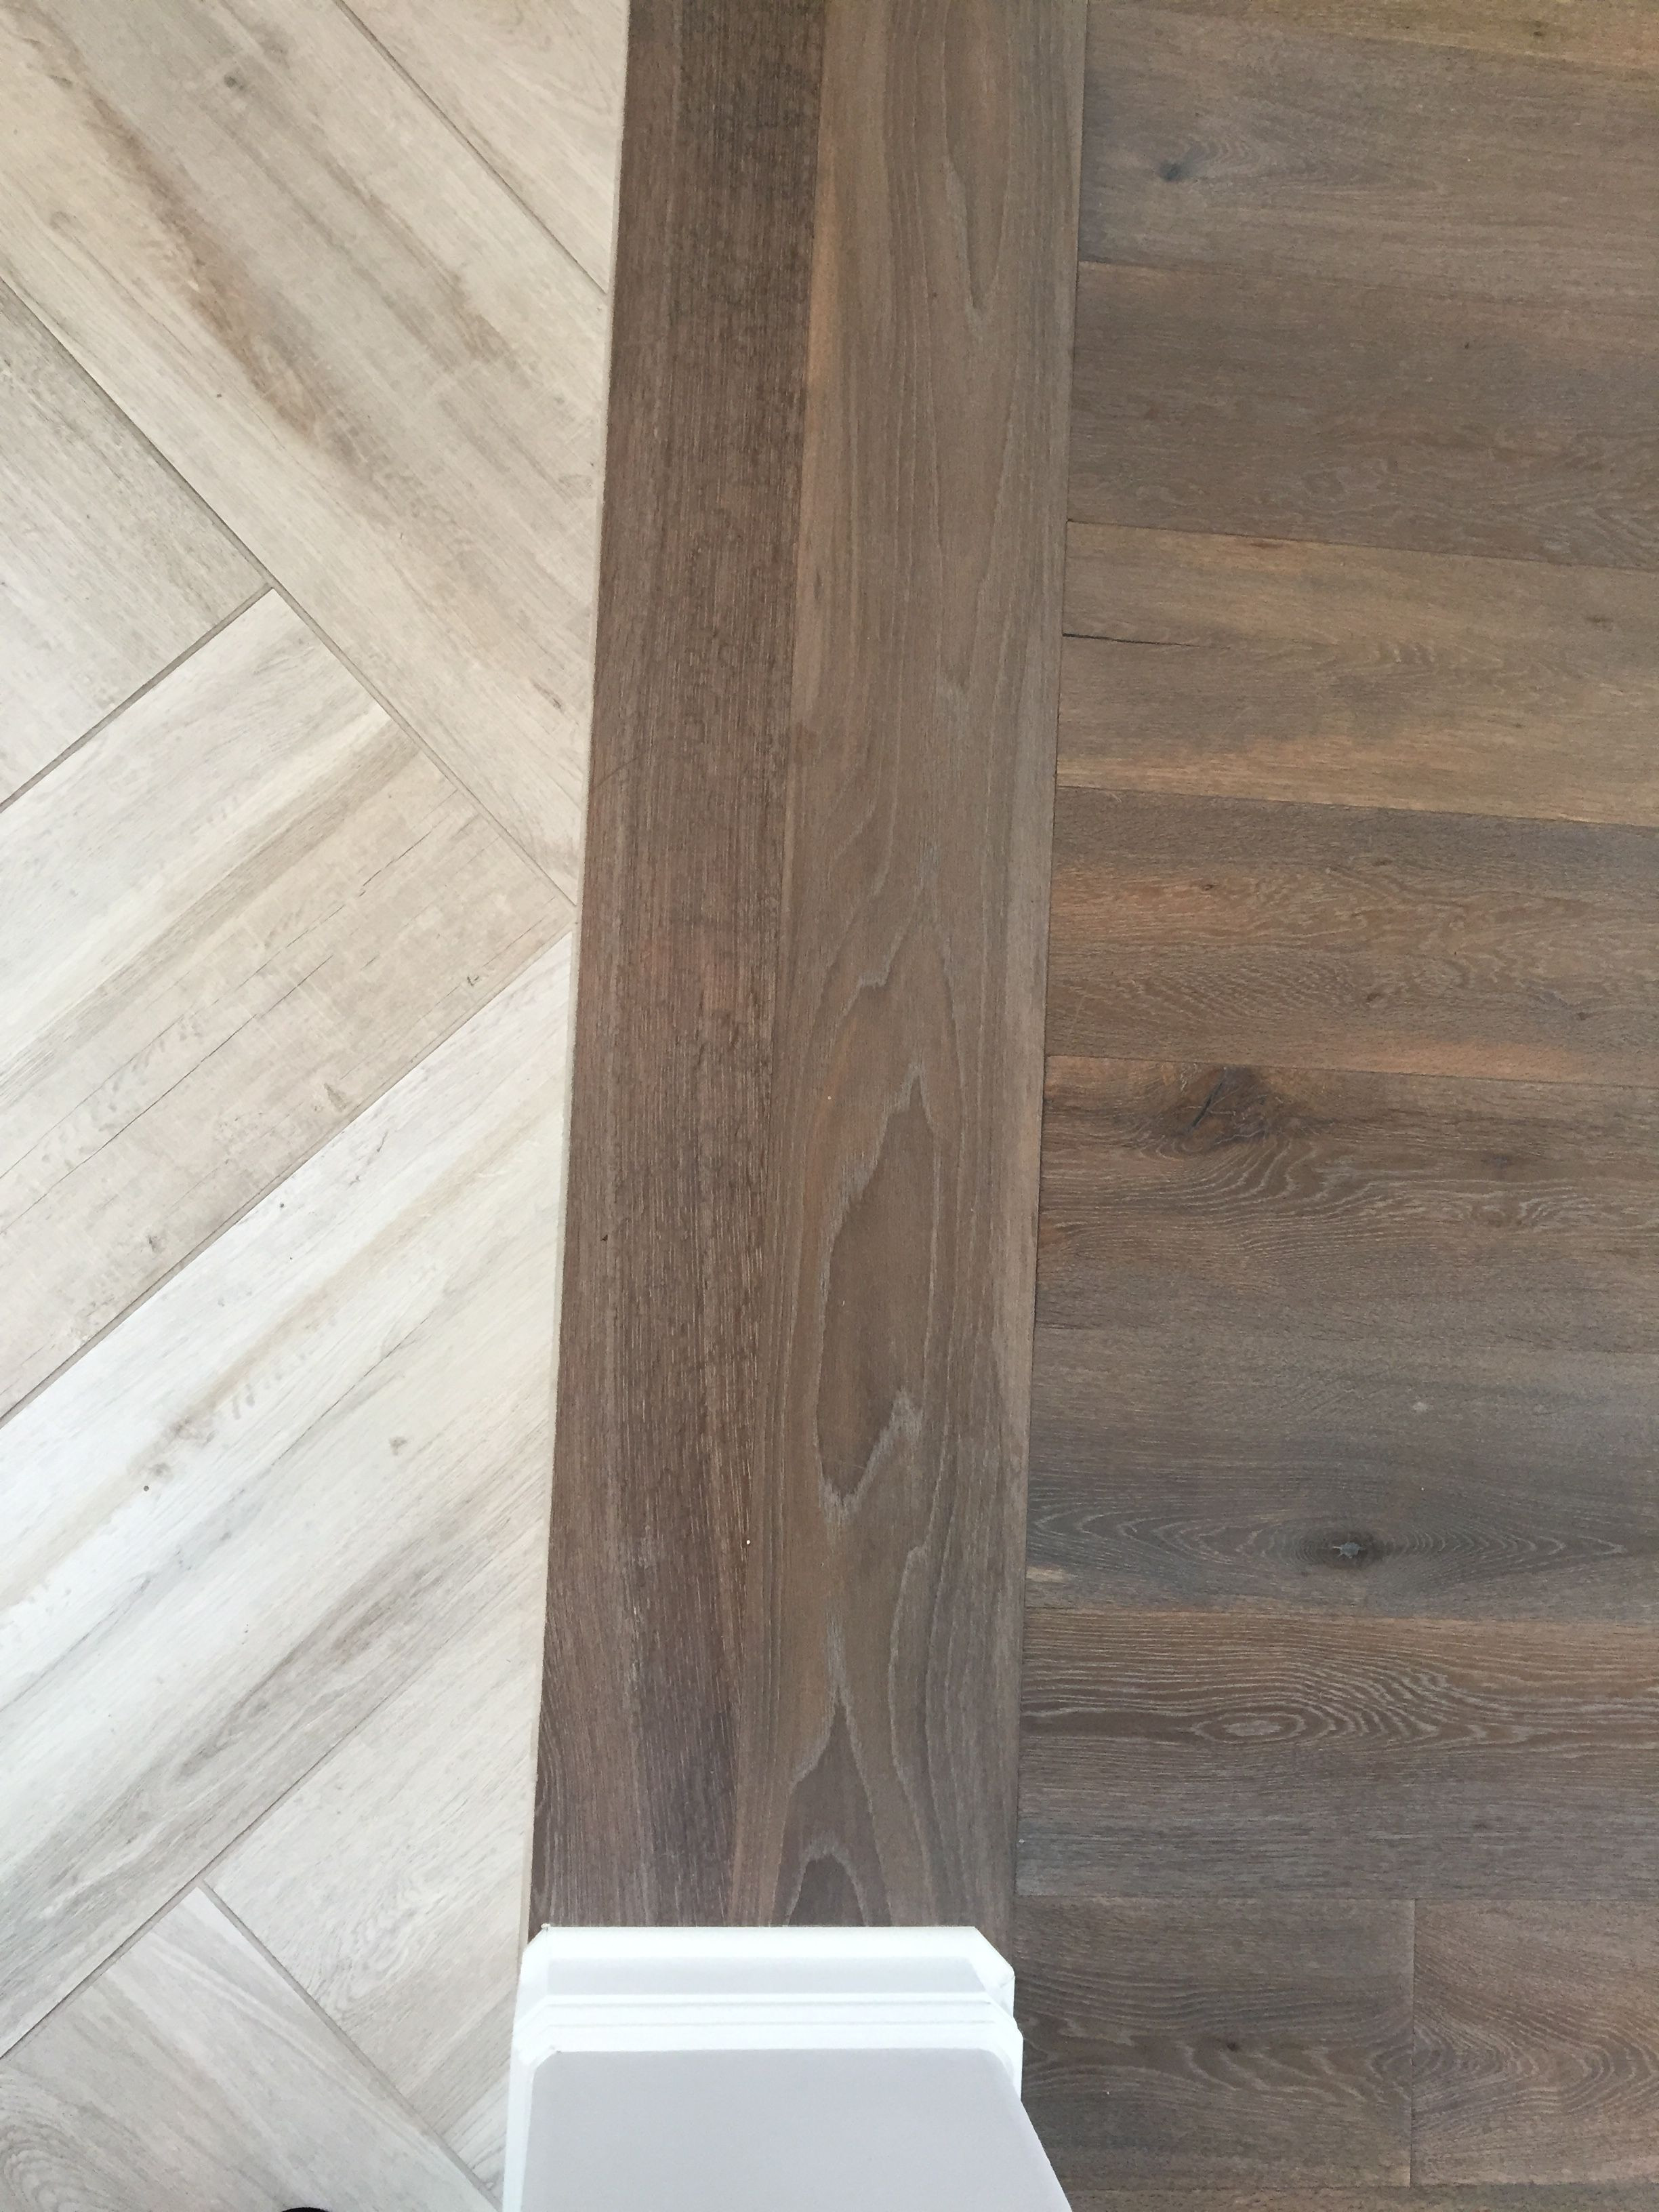 How Much to Refinish Engineered Hardwood Floors Of Floor Transition Laminate to Herringbone Tile Pattern Model Throughout Floor Transition Laminate to Herringbone Tile Pattern Herringbone Tile Pattern Herringbone Wood Floor